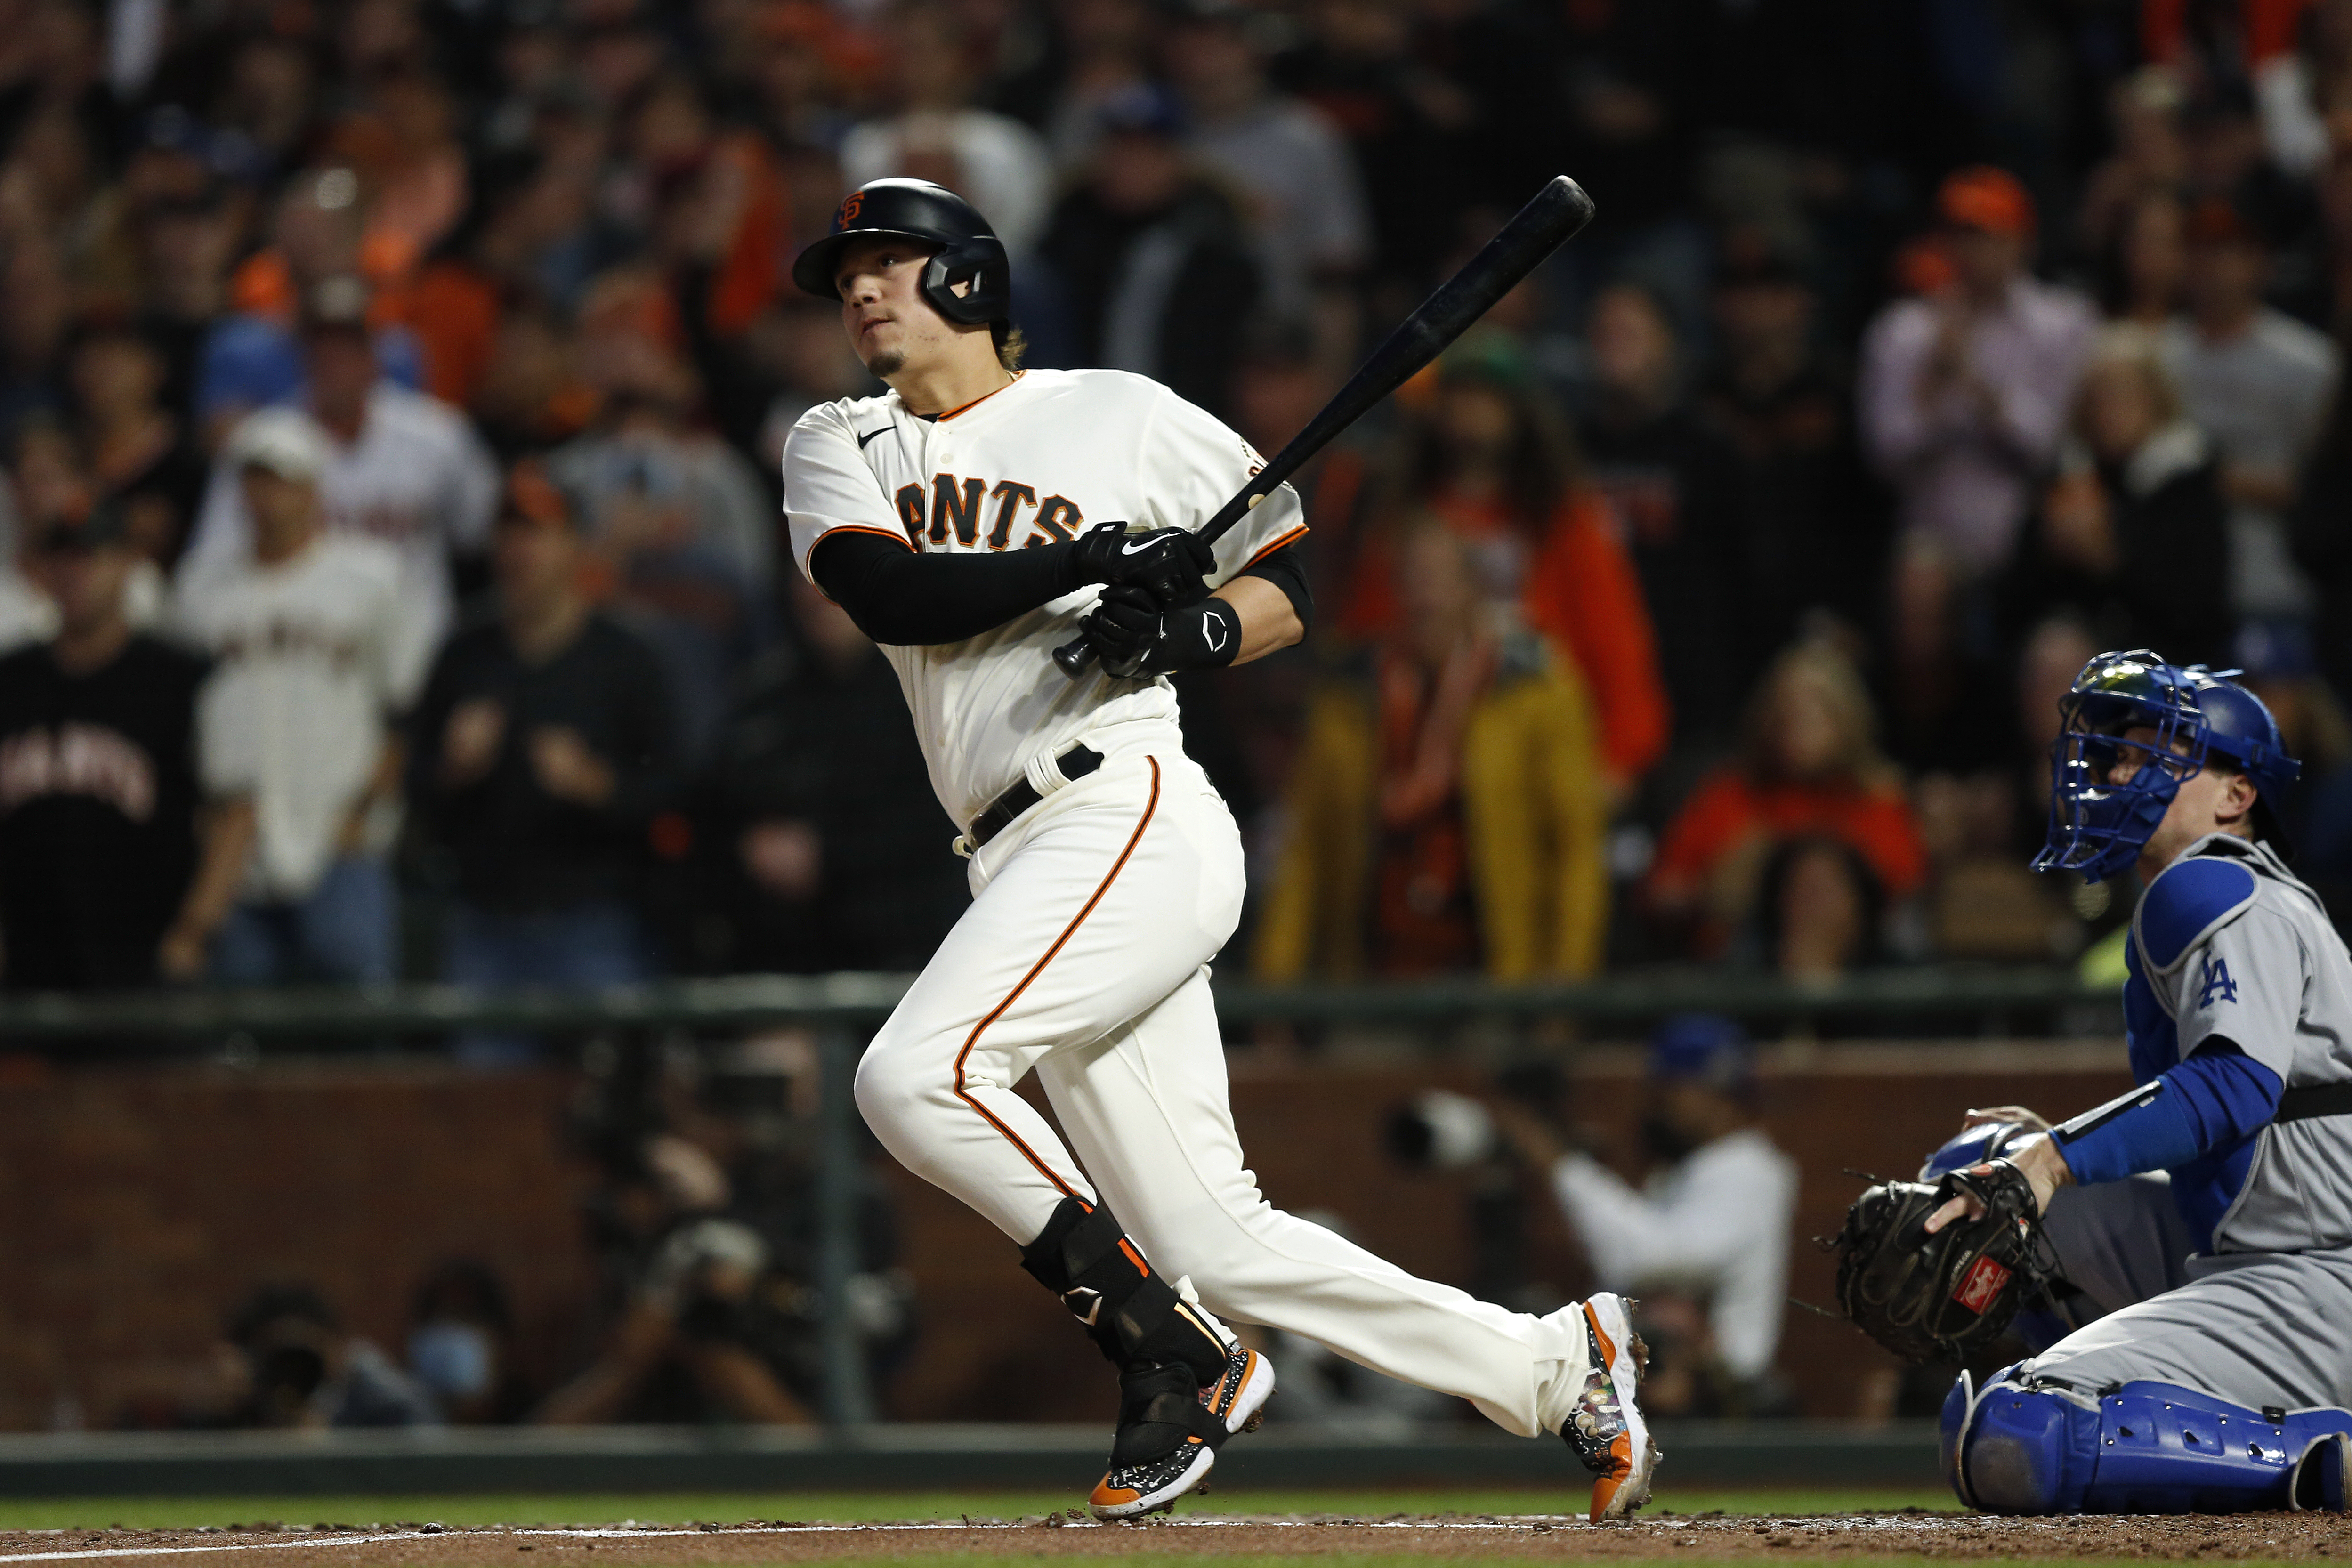 Wilmer Flores #41 of the San Francisco Giants hits a single in the second inning during Game 5 of the NLDS between the Los Angeles Dodgers and the San Francisco Giants at Oracle Park on Thursday, October 14, 2021 in San Francisco, California.